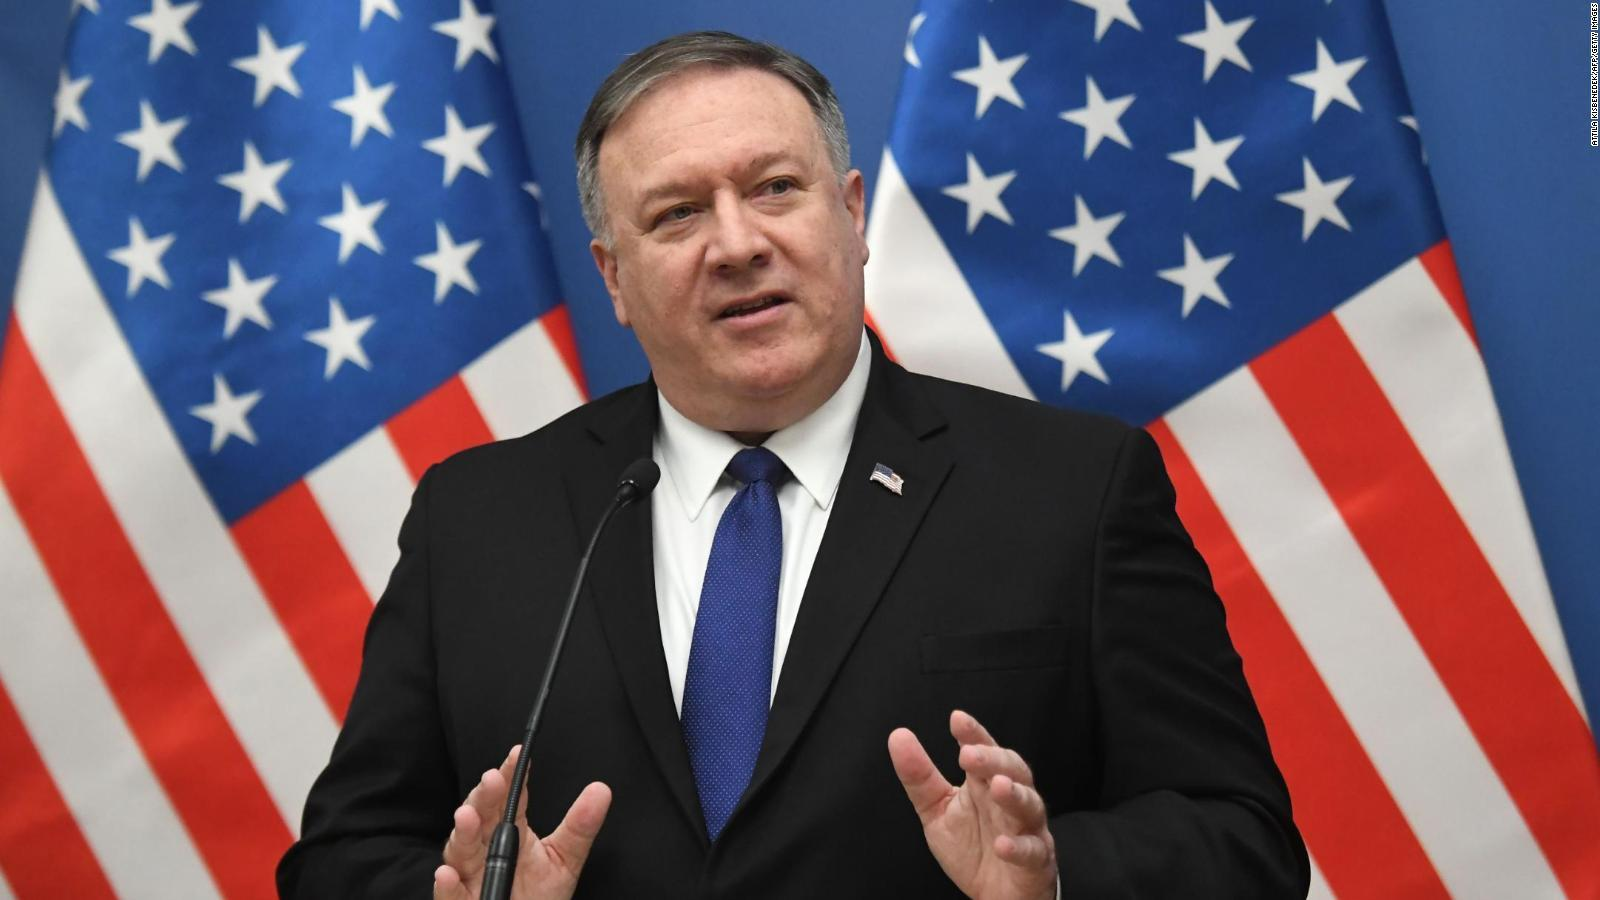 Pompeo threatens Iran: We will respond firmly!